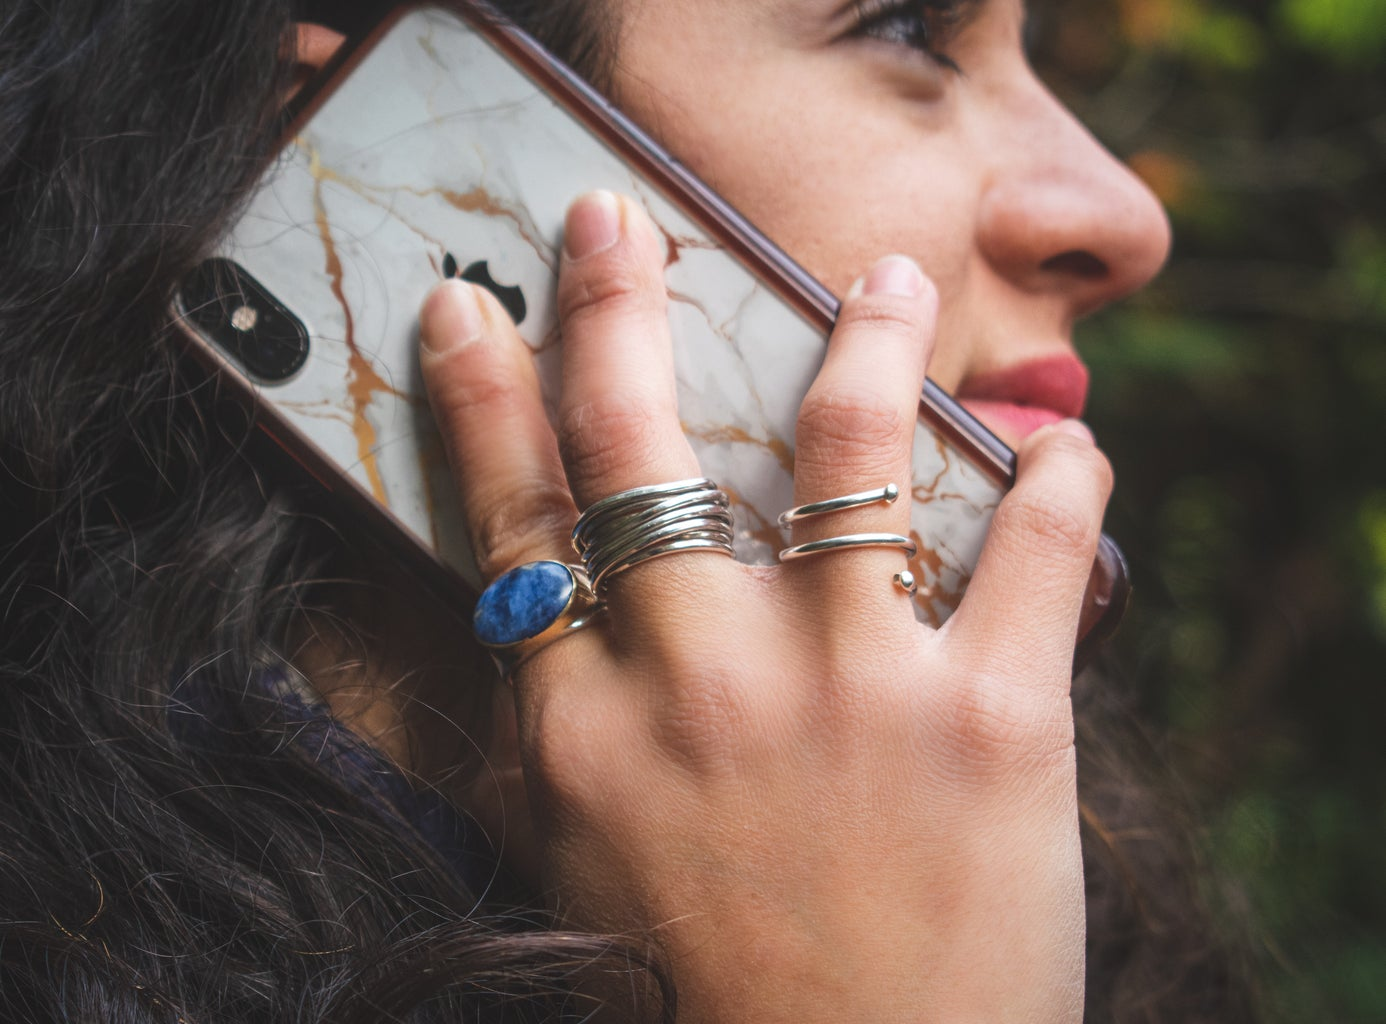 Woman holding an iPhone to her ear